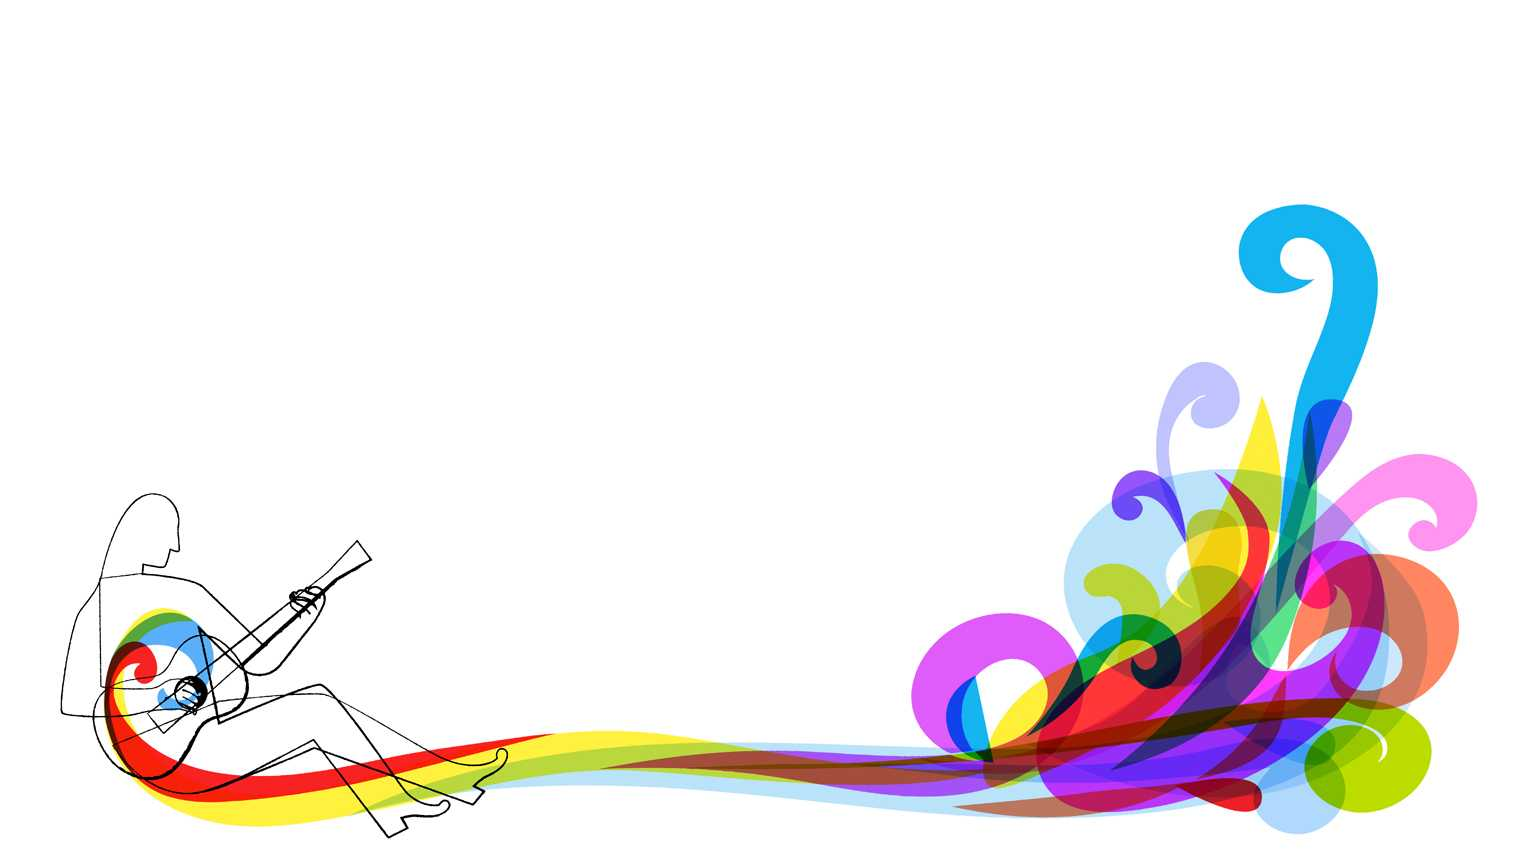 An artist's rendering of a man playing guitar with colorful waves representing the tune.